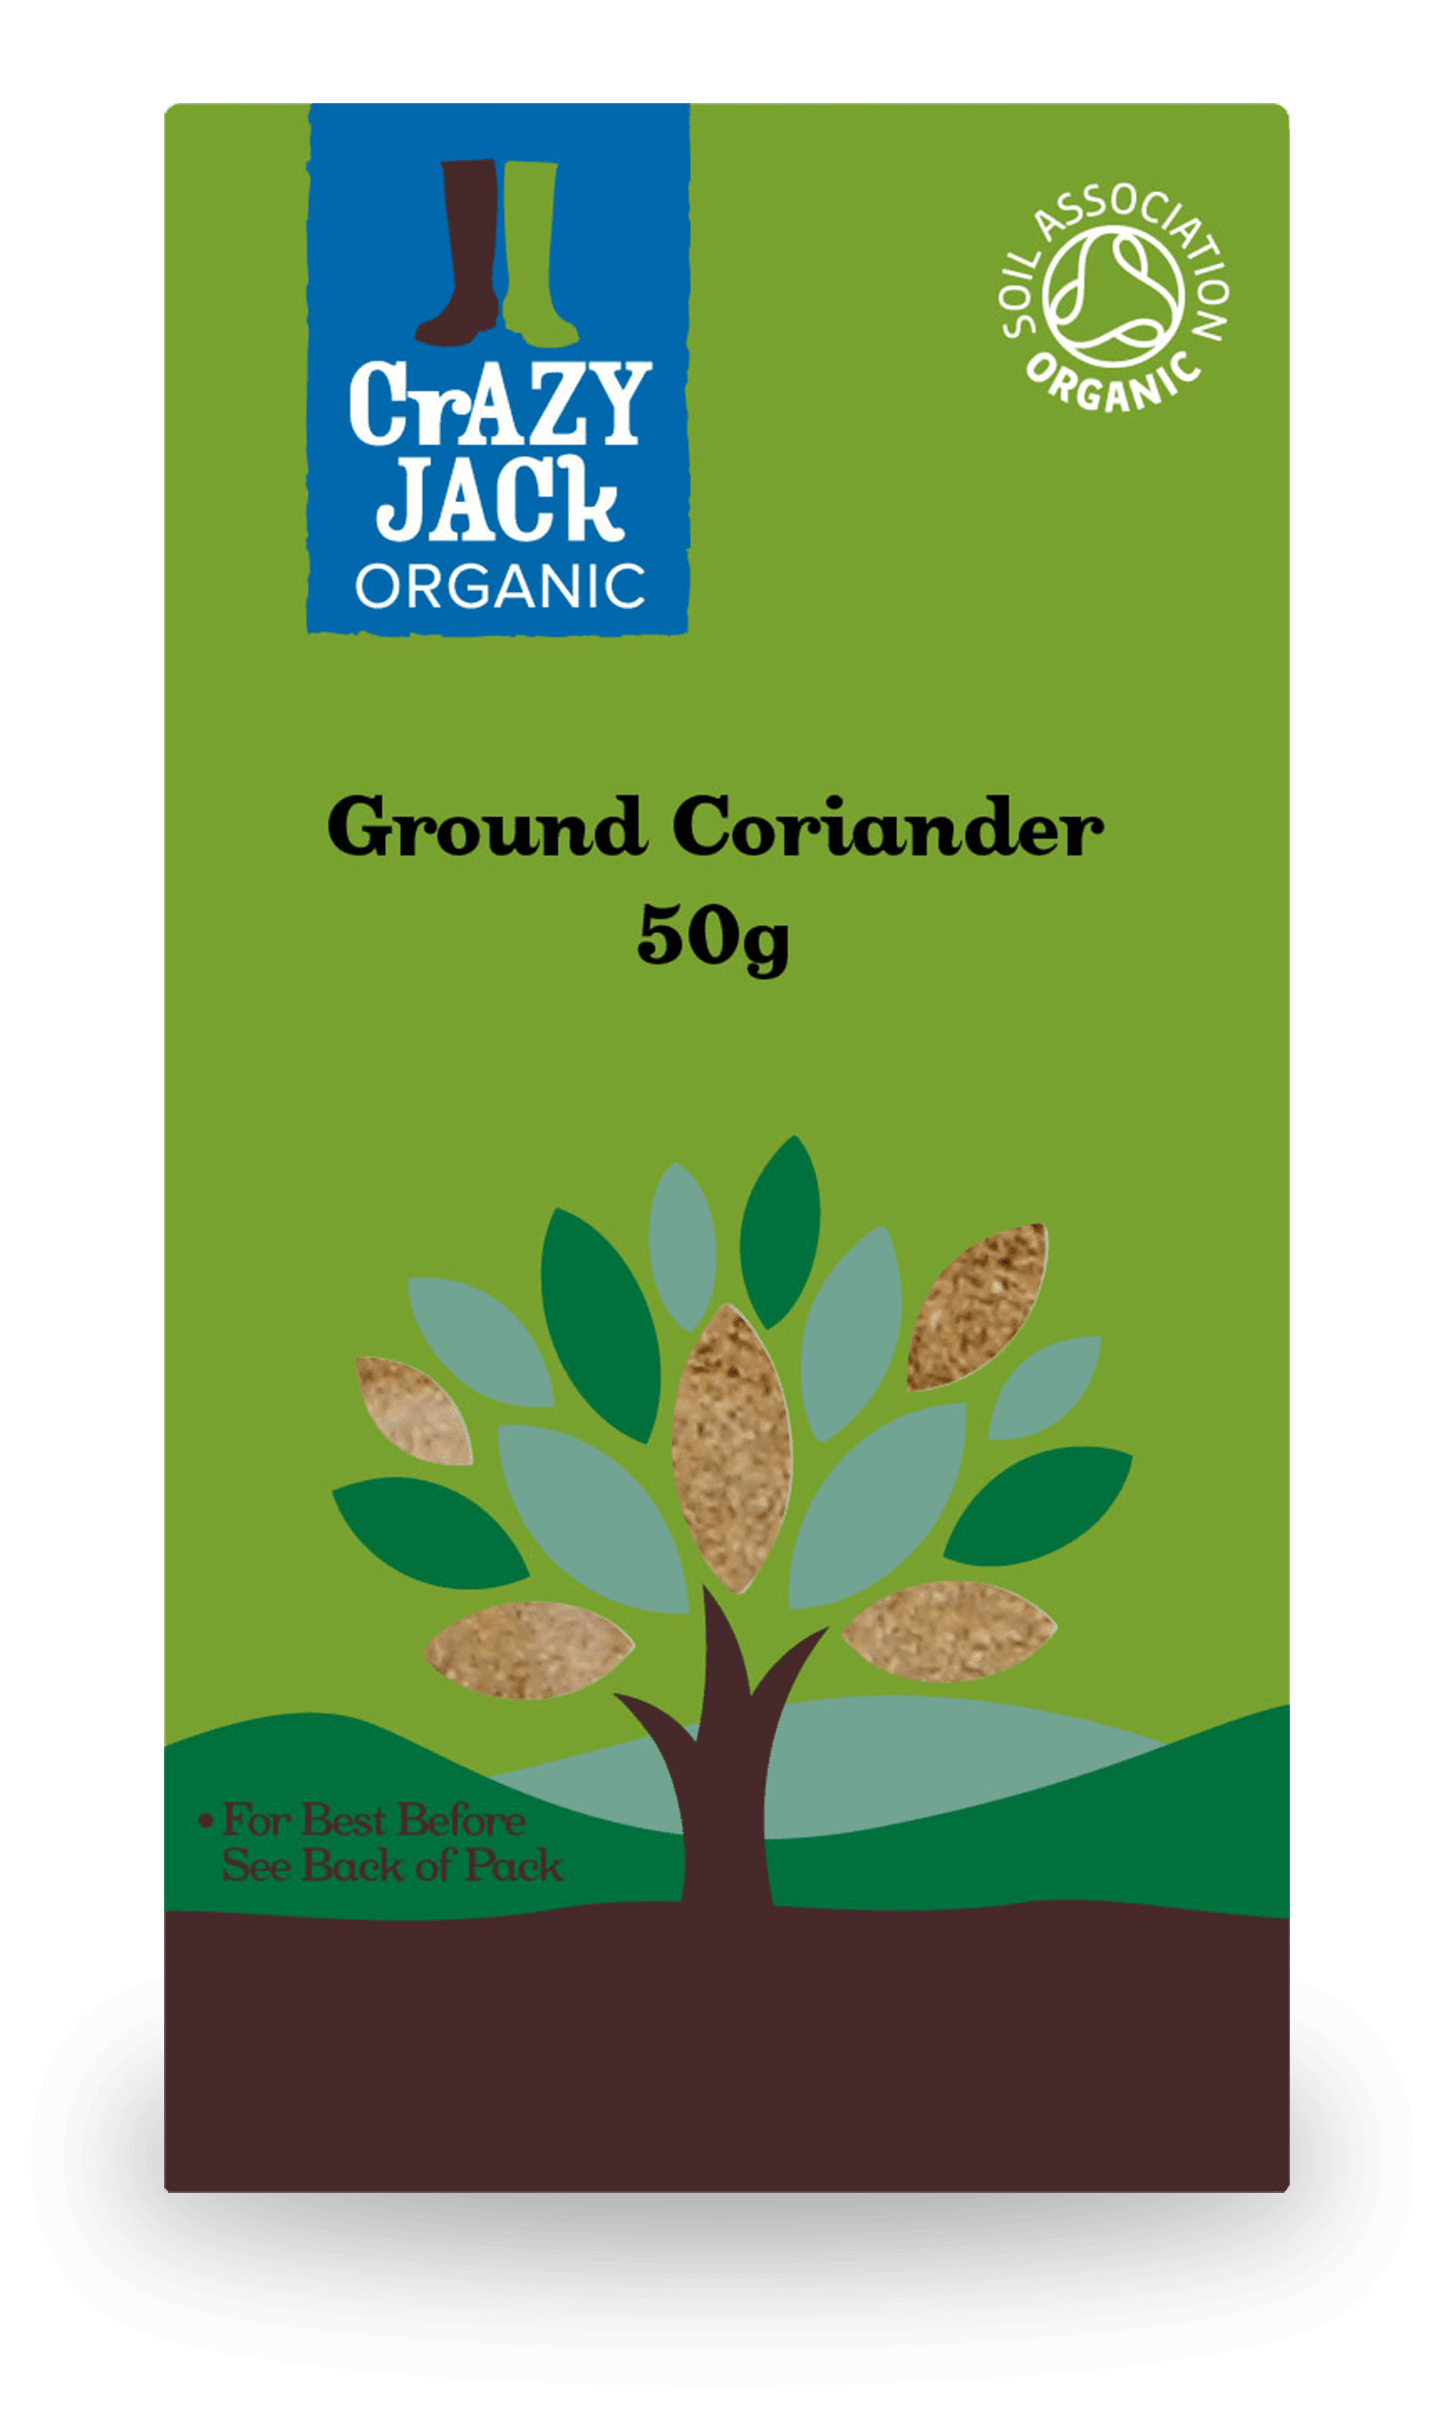 50g packet of organic ground corriander